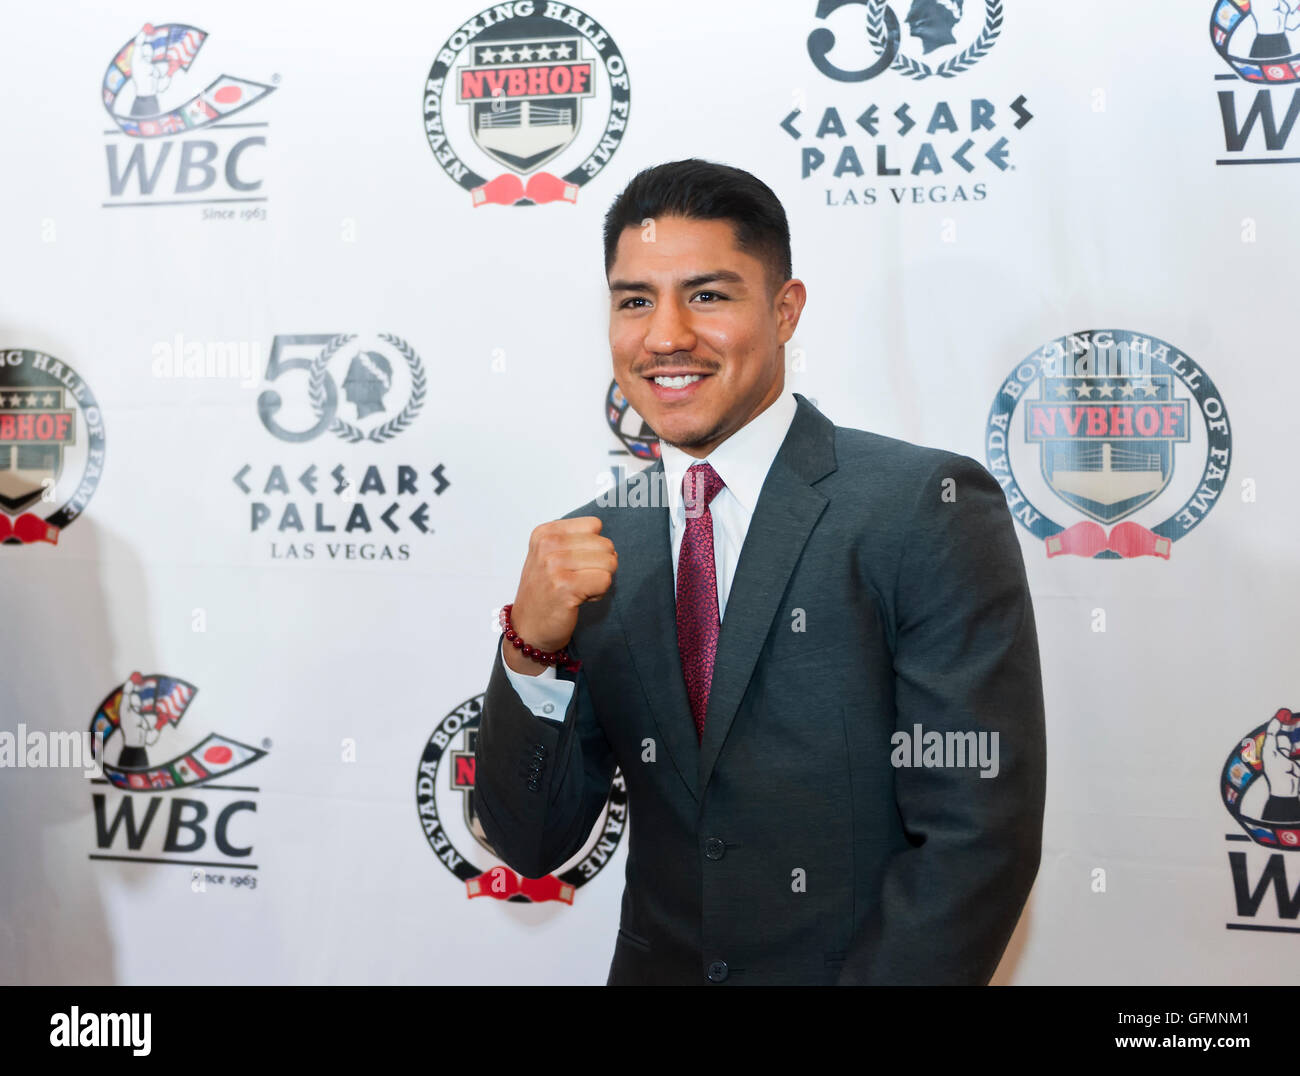 Las Vegas, Nevada, USA. 30th July, 2016. Jessie Vargas on the red carpet at the 4th Annual Nevada Boxing Hall of - Stock Image